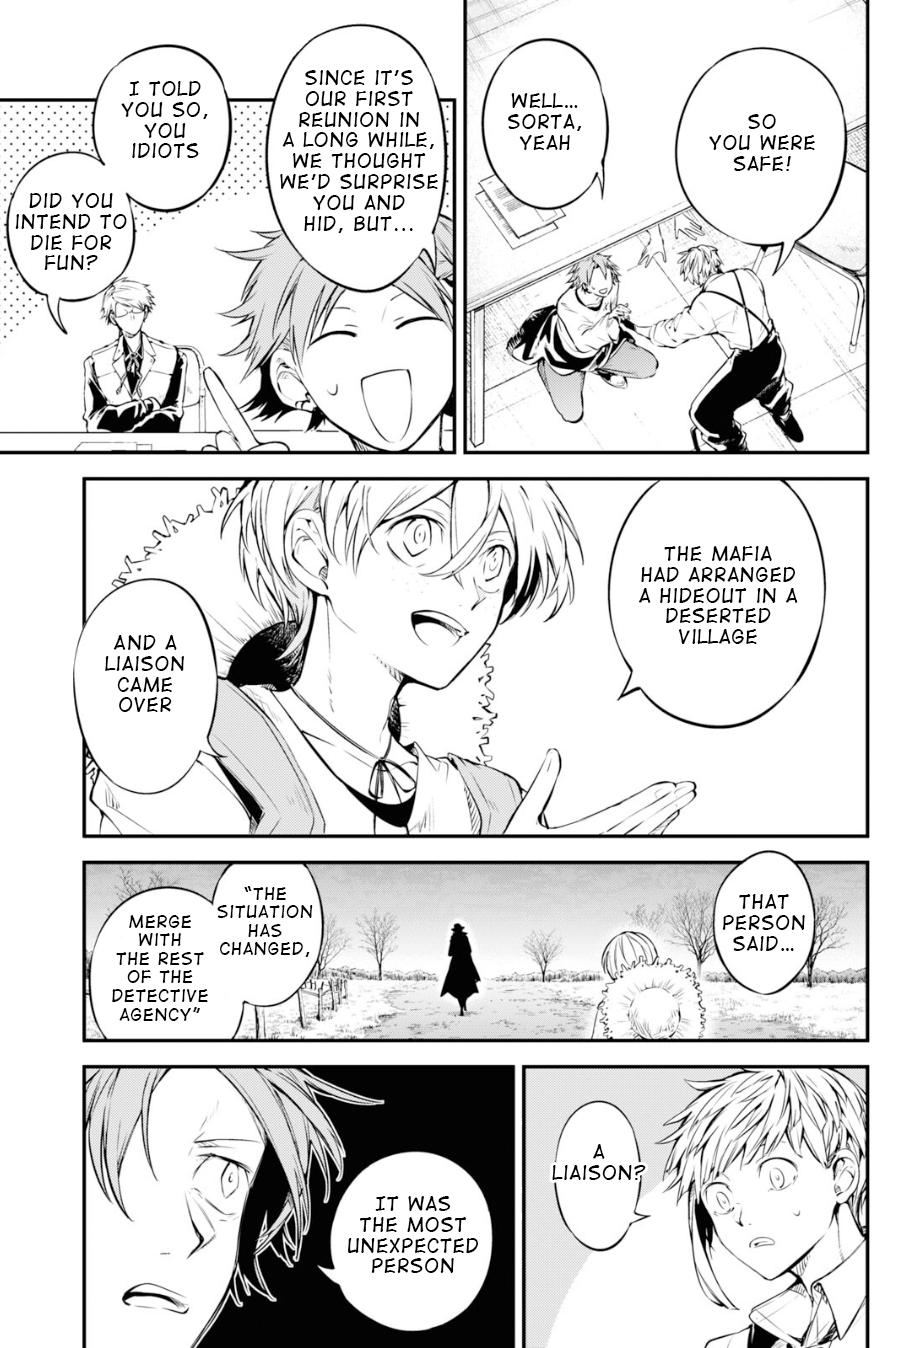 Bungou Stray Dogs Chapter 91 Page 7